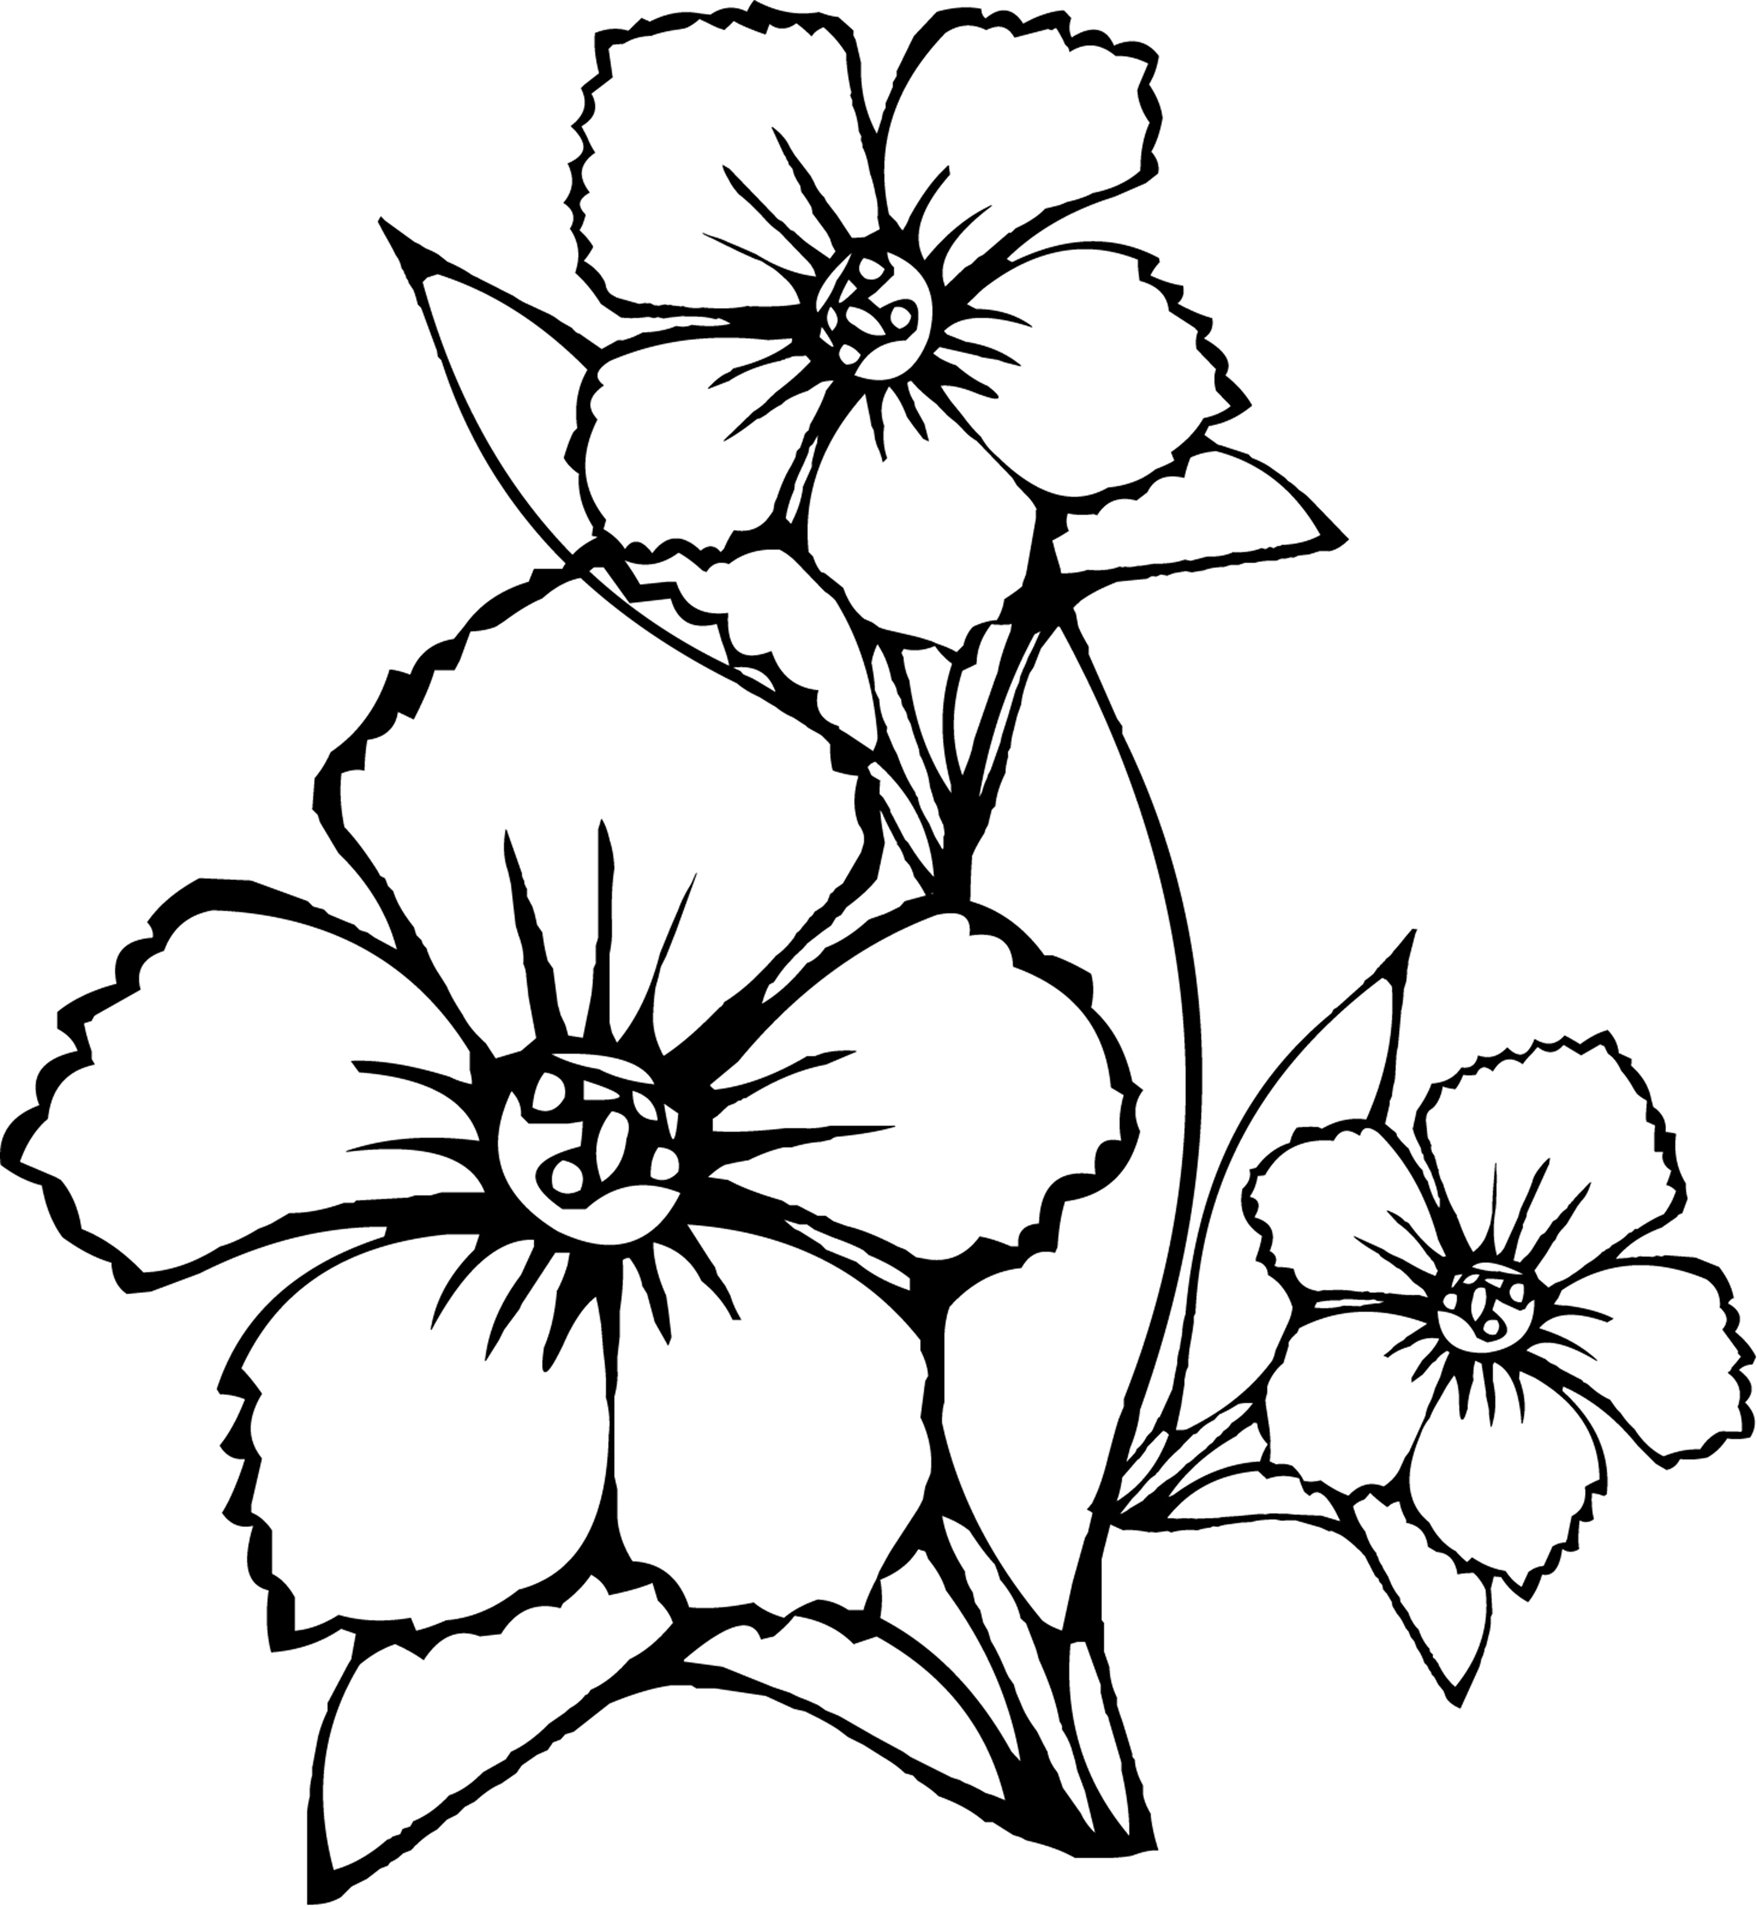 free printable flower coloring pages - free printable flower coloring pages kids